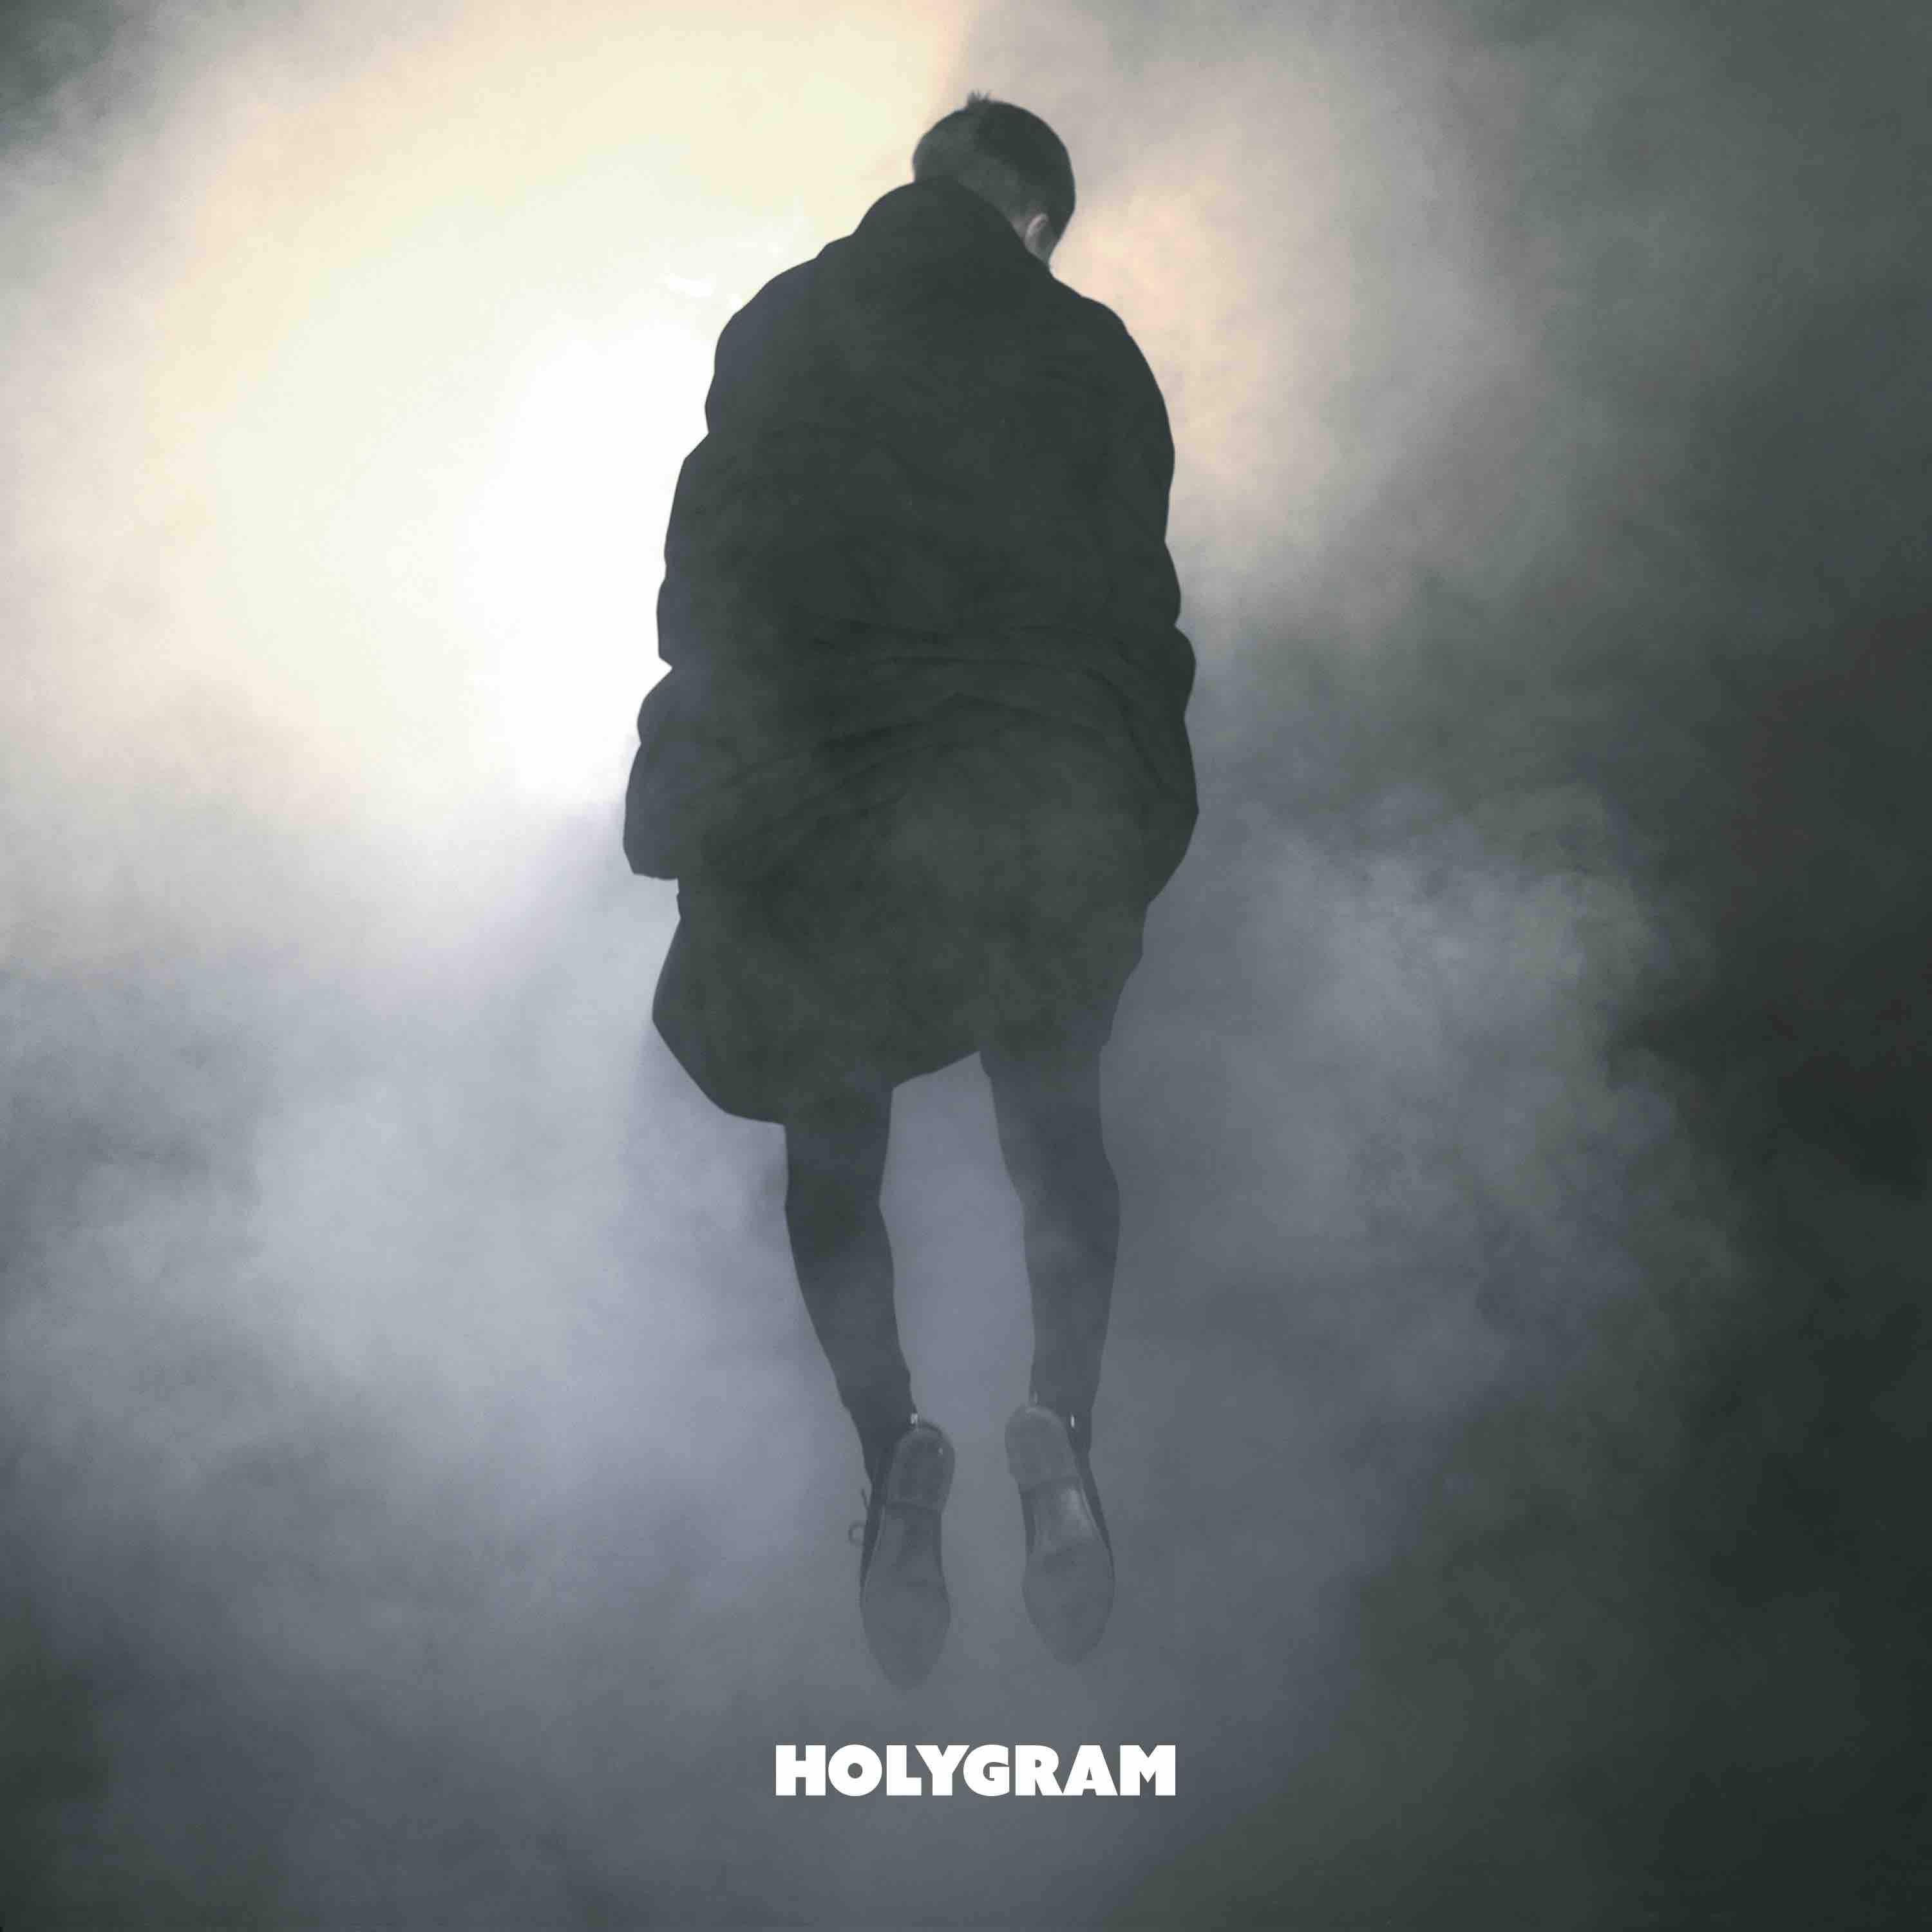 HOLYGRAM released their debut album on Nov. 9 and are currently on a North American tour. l Cover photo by: Ville Andersson